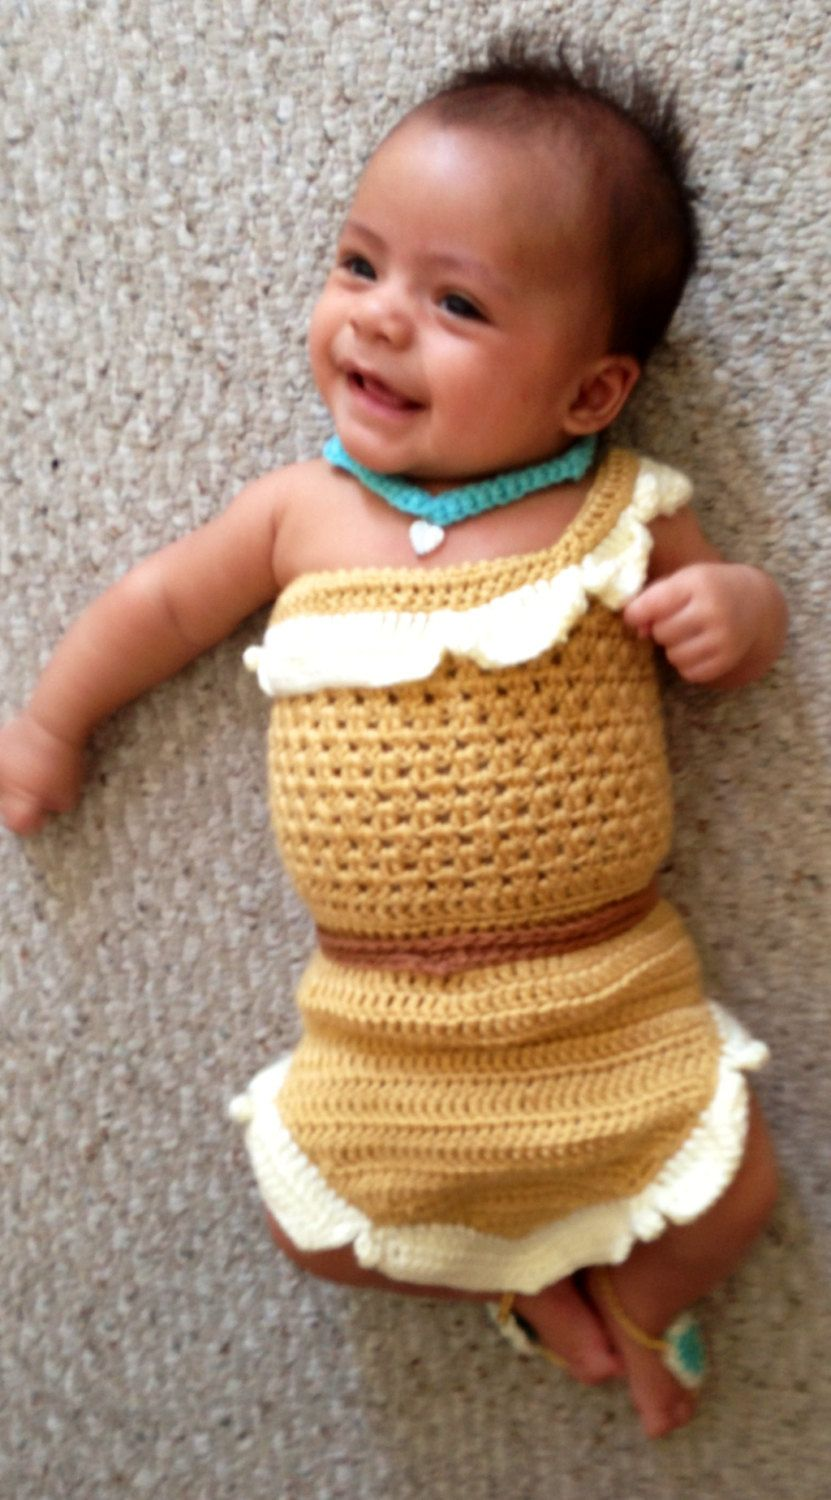 Crochet photo prop disneys pocahontas inspired princess dress crochet photo prop disneys pocahontas inspired princess dress size newborn or 0 3months bankloansurffo Image collections